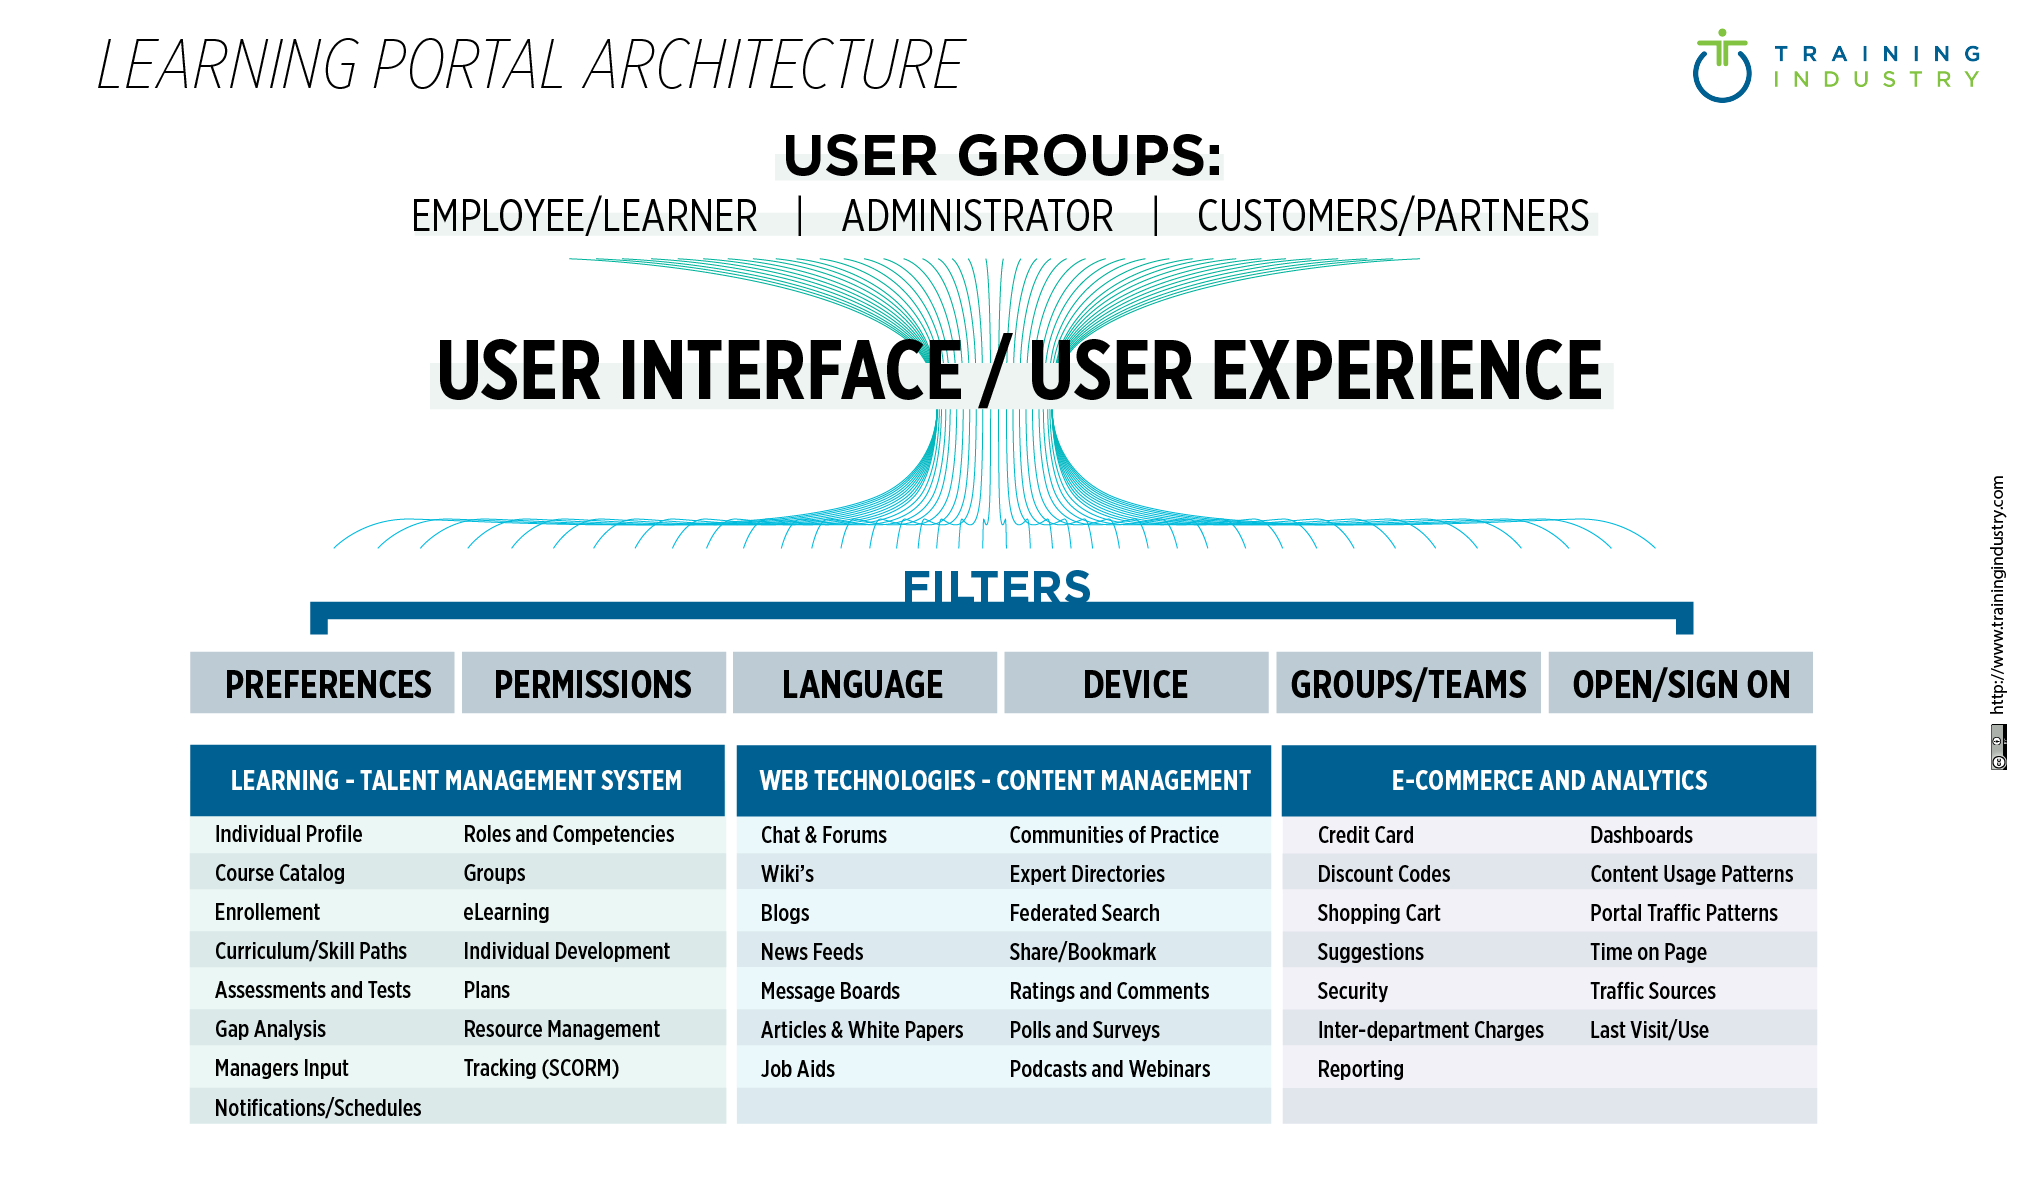 Learning Portal Architecture _485x 284